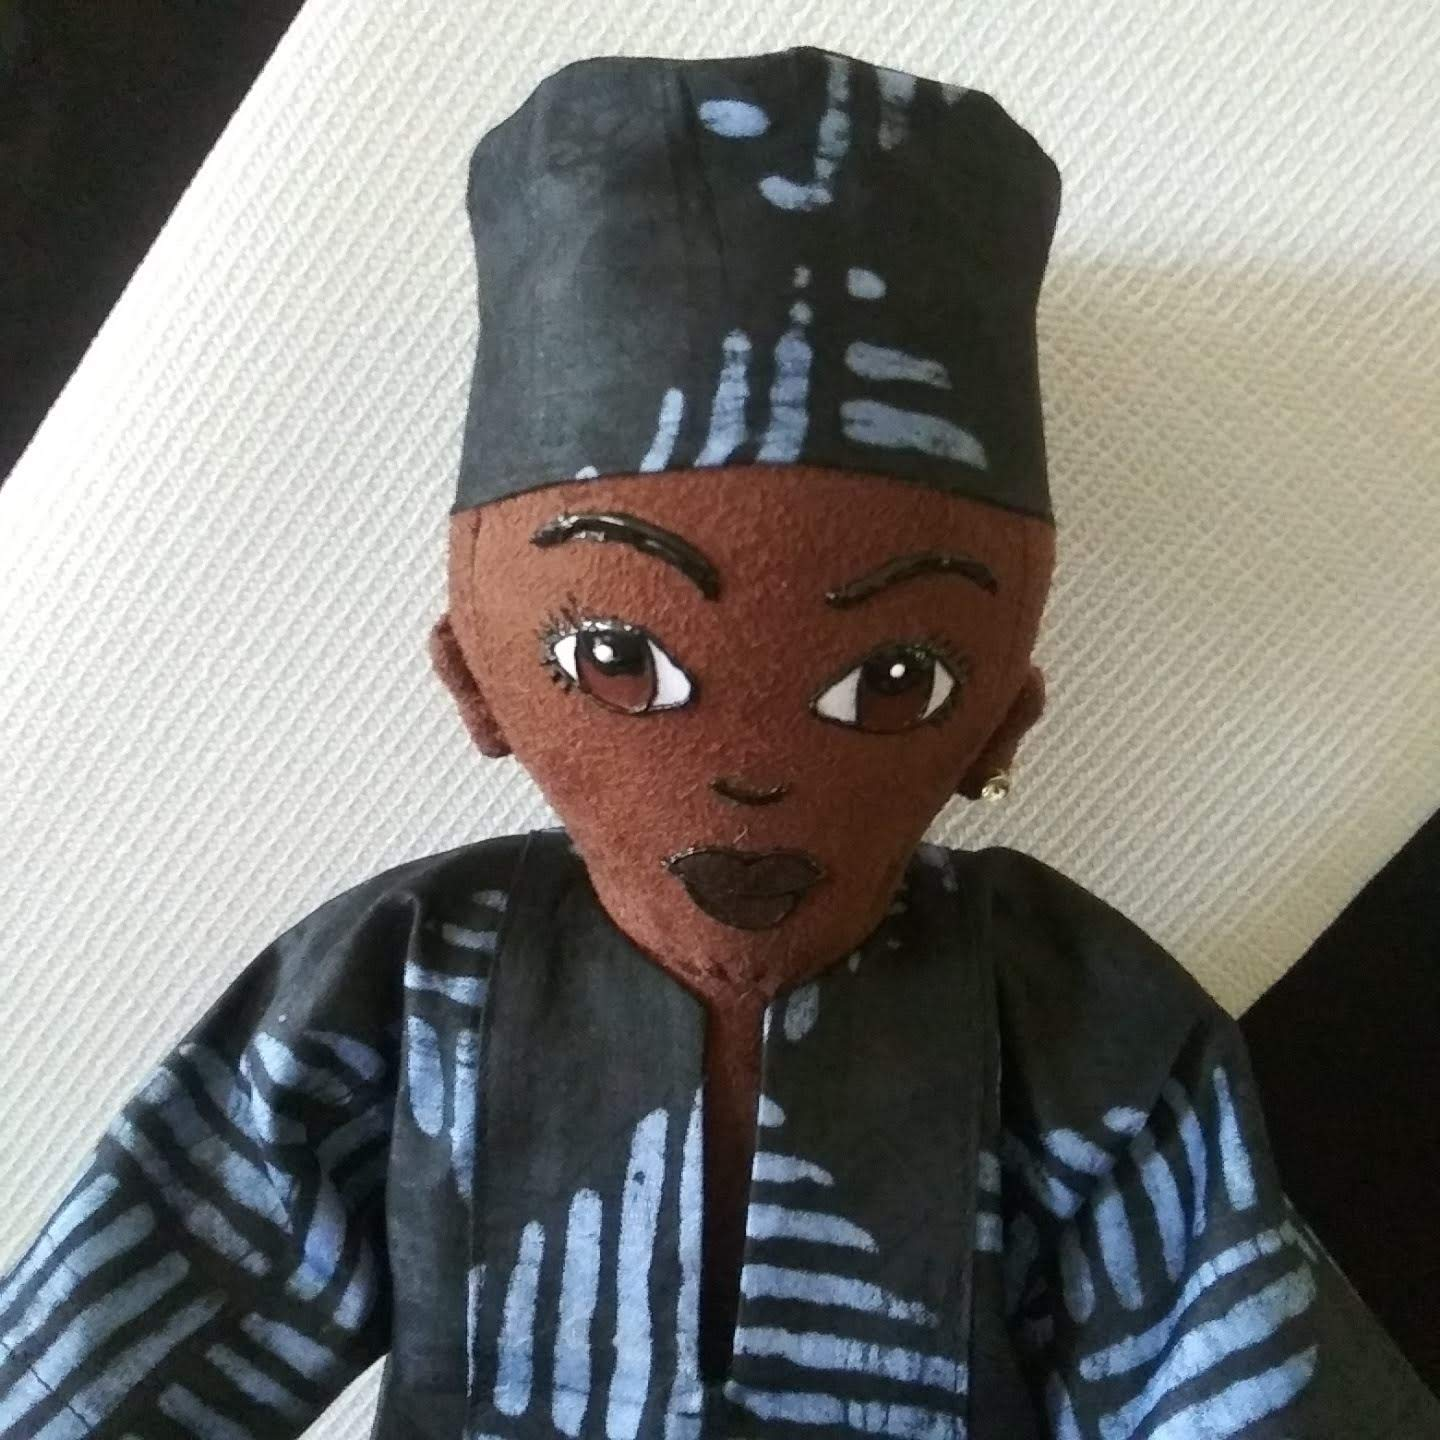 Handcrafted African Inspired Ethnic Doll African American Doll Collectible Doll 19 inch Doll African King Boy Doll Black Doll Black Doll Maker Multicultural Doll Hand Painted Male Doll